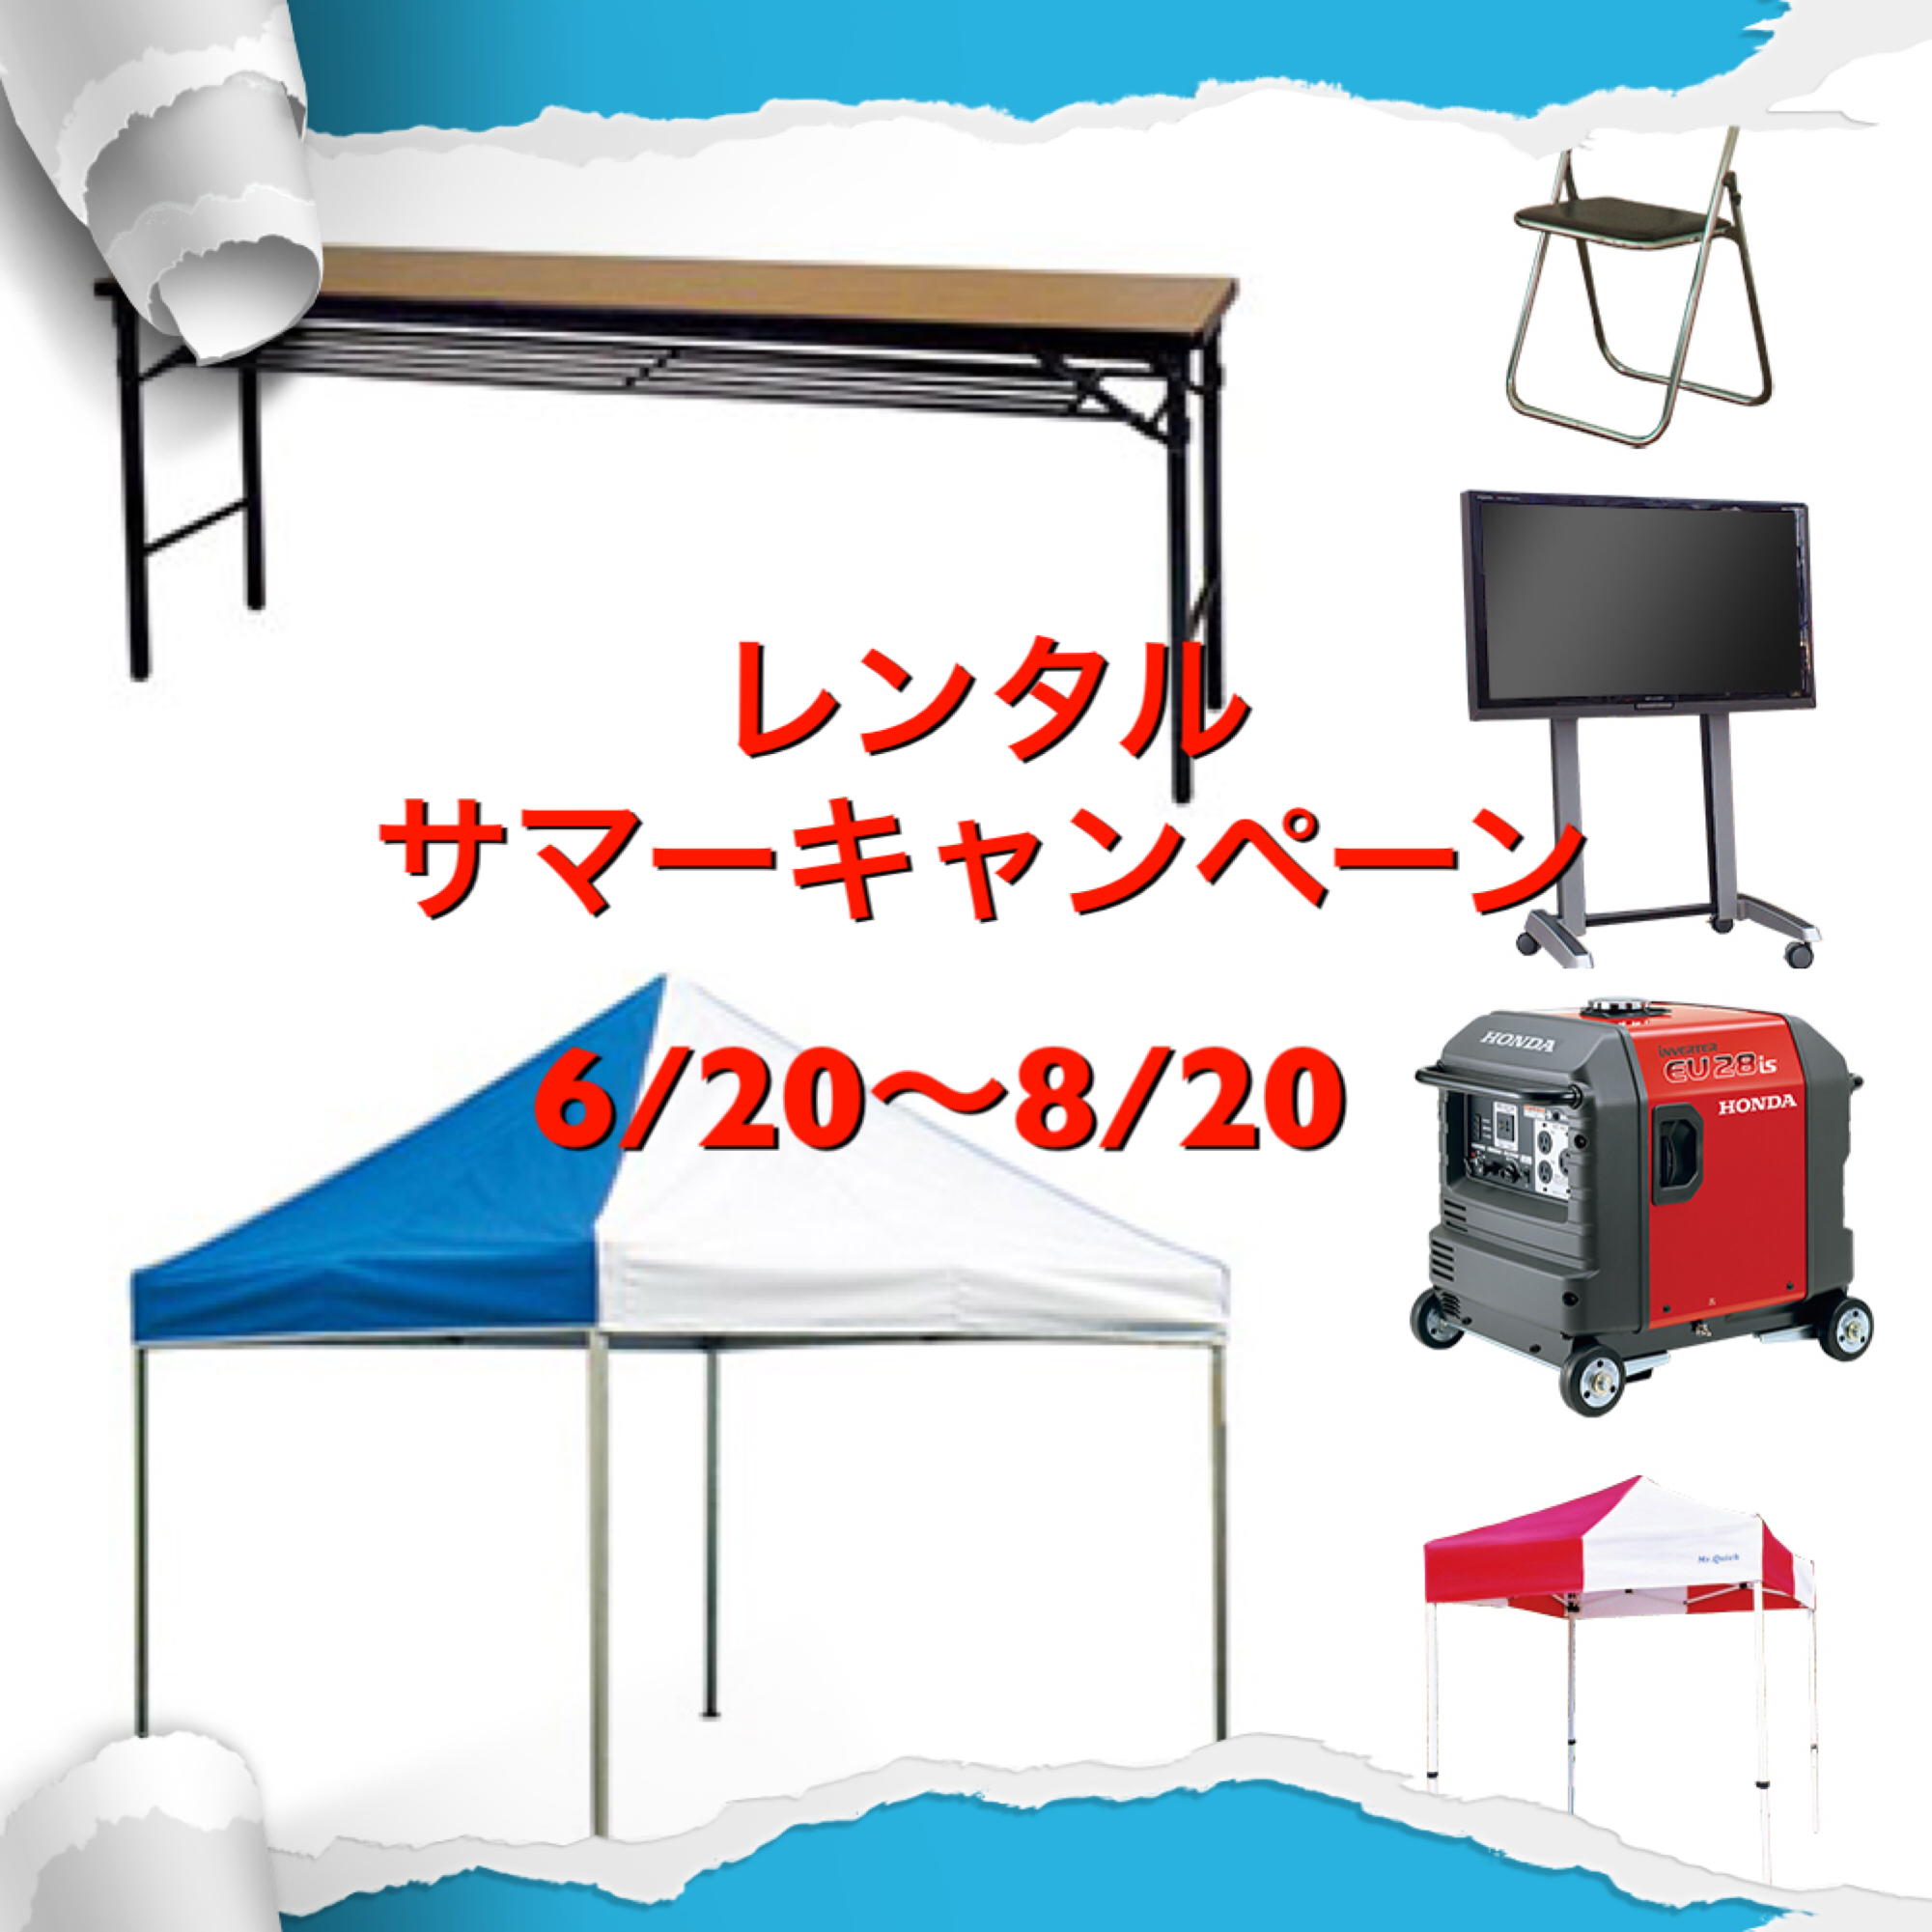 rental_campaign